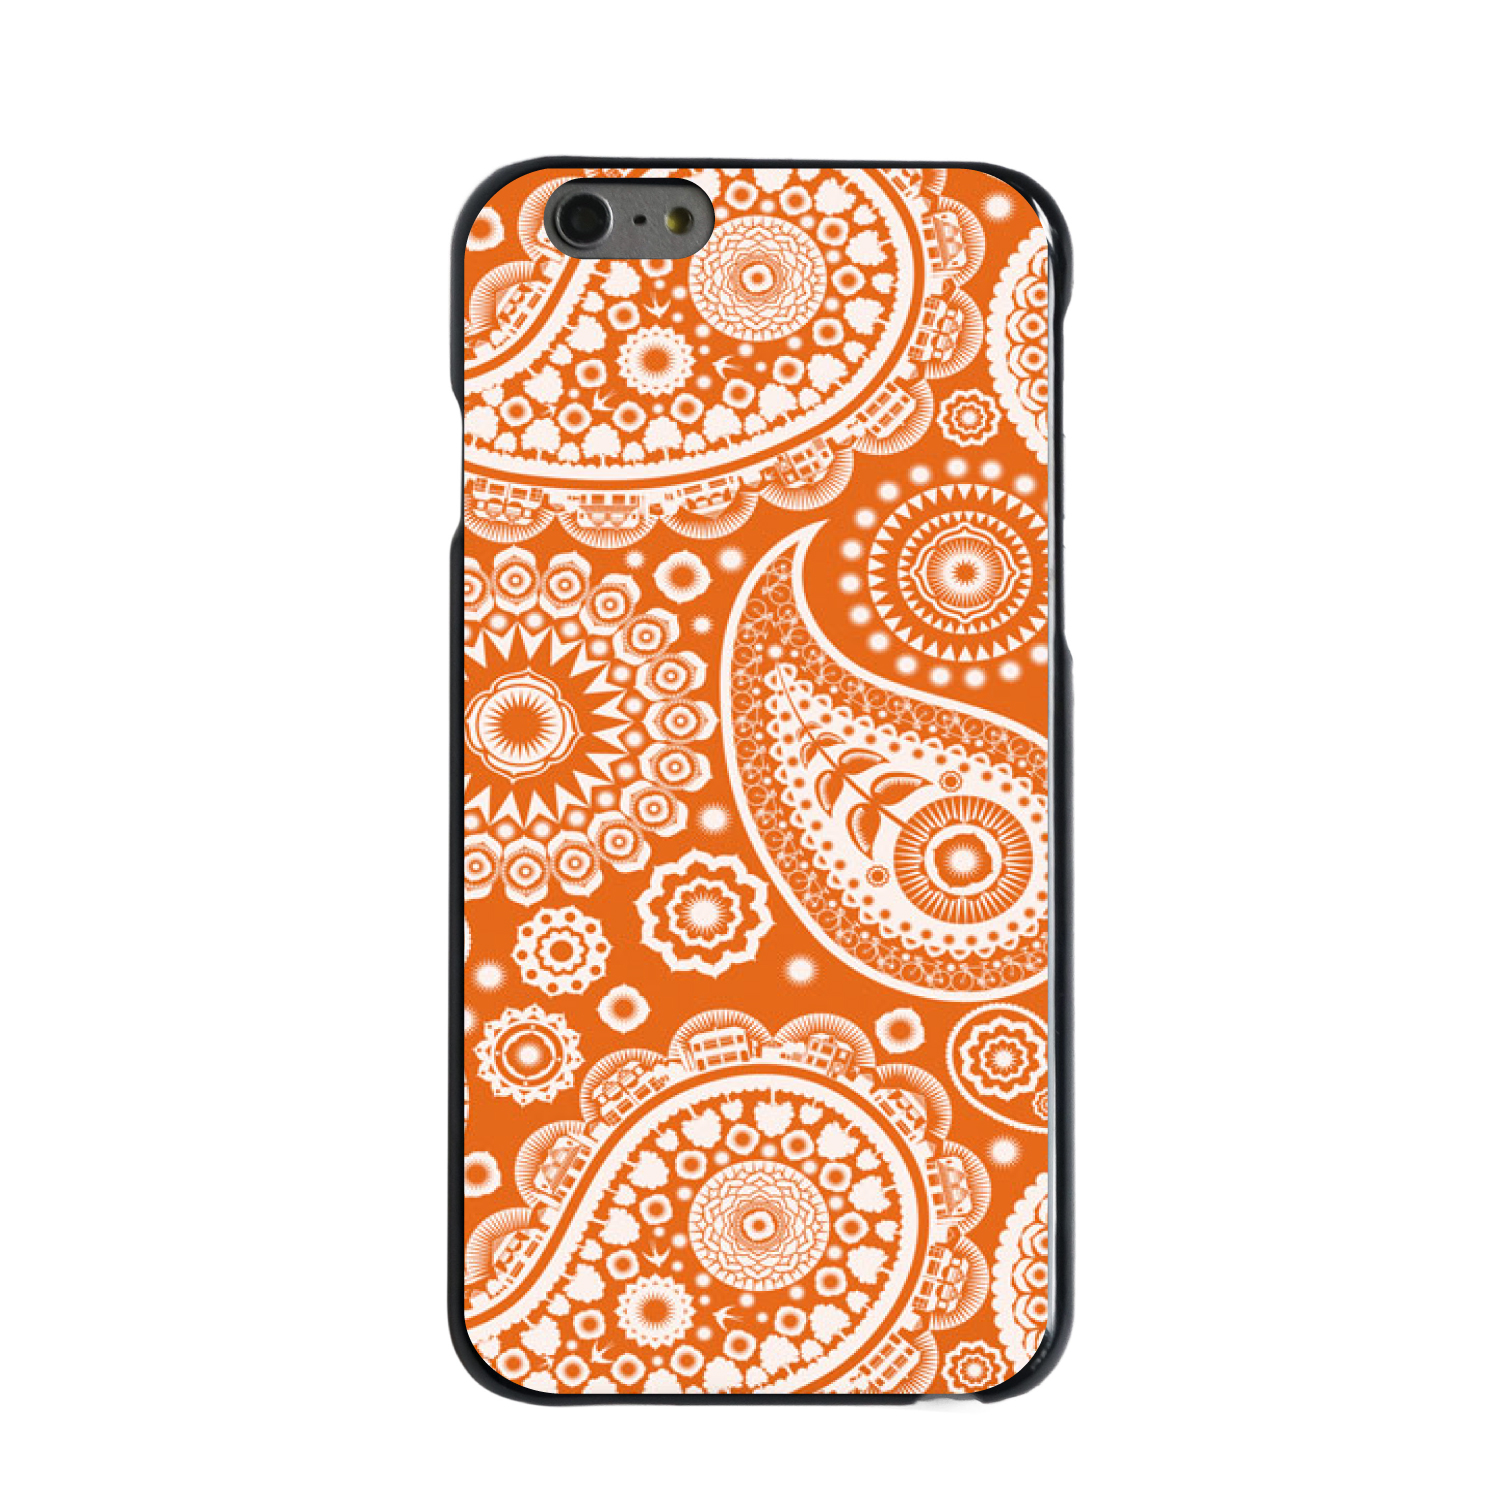 "CUSTOM Black Hard Plastic Snap-On Case for Apple iPhone 7 / iPhone 8 (4.7"" Screen) - Orange White Paisley"